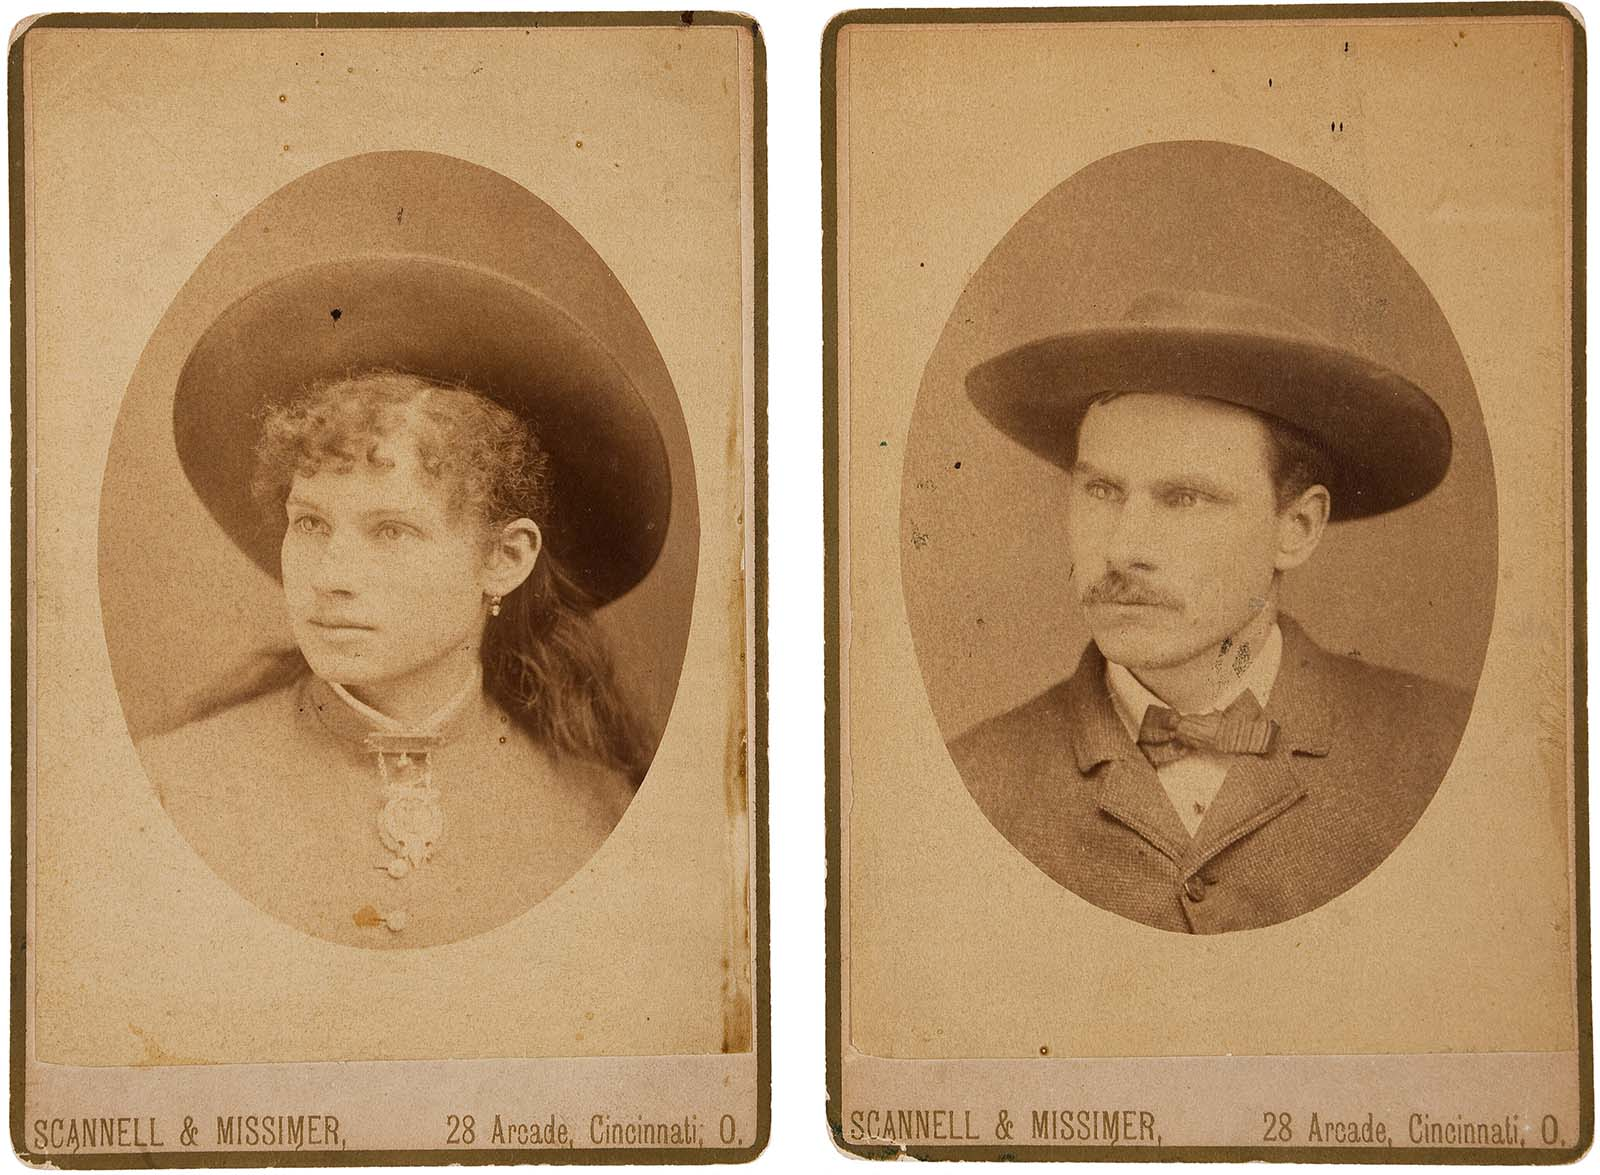 Cabinet photos of Phoebe Ann Moses-Butler, better known by her stage name Annie Oakley, and her husband, sharpshooter Frank E. Butler. Courtesy of Heritage Auctions, HA.com.